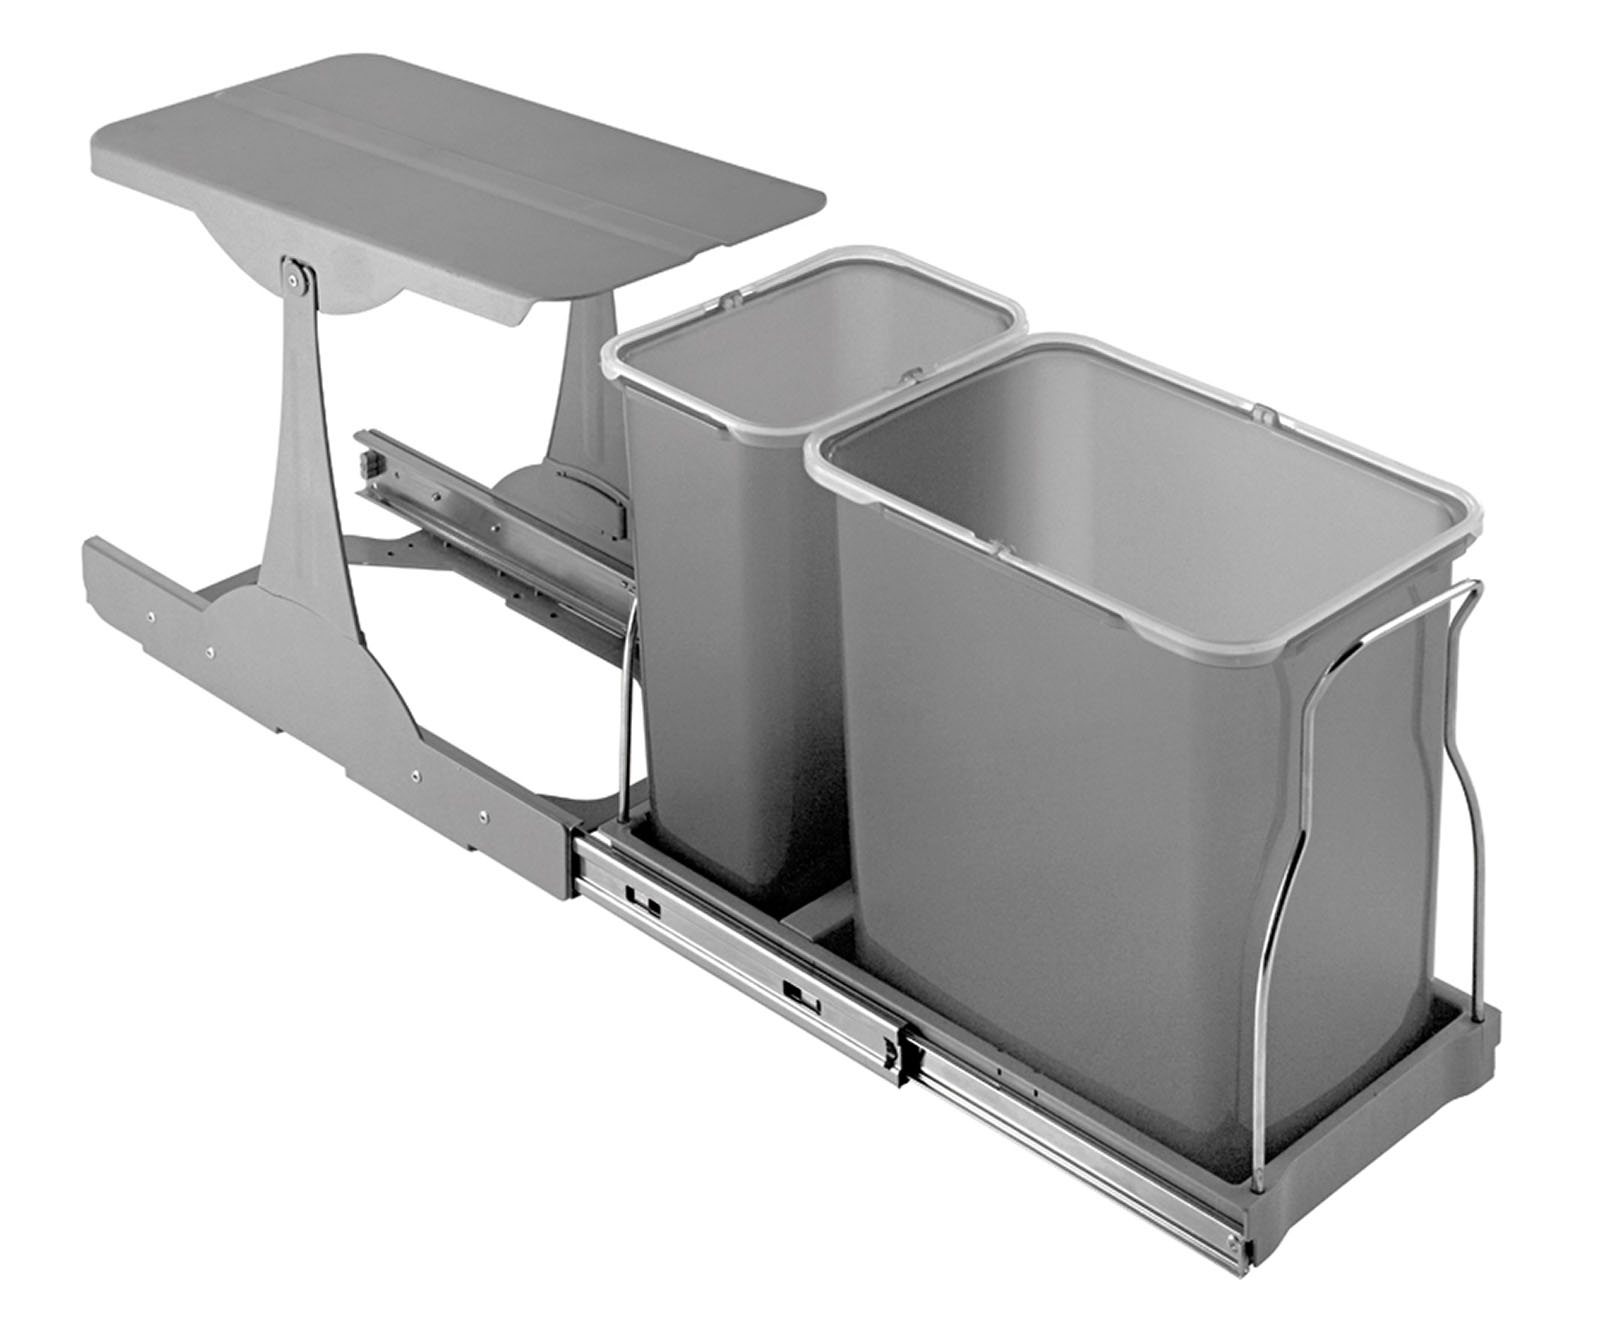 Sinks PATTY 30 1x8l+ 1x16l